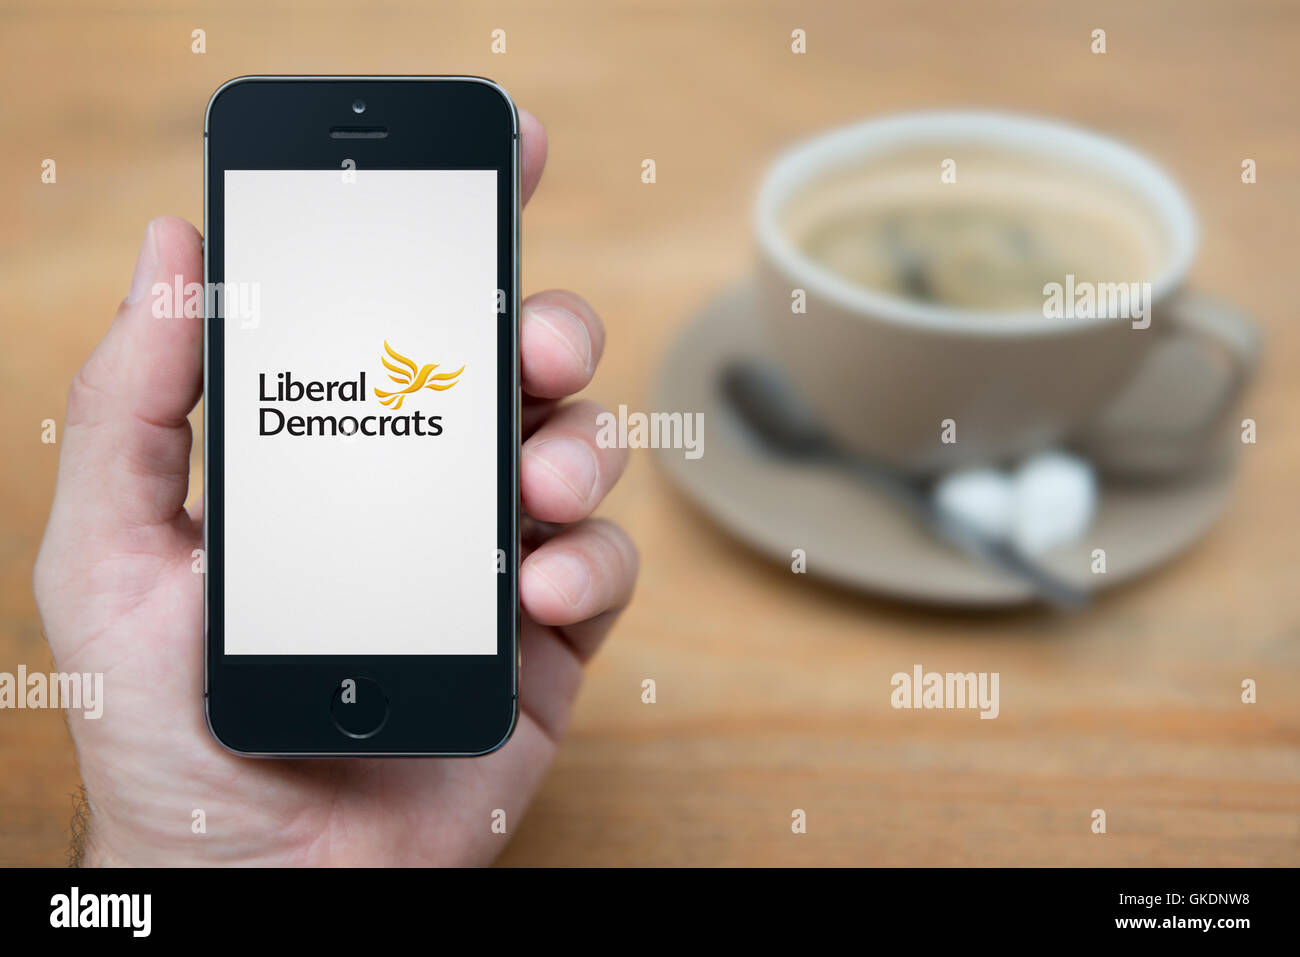 A man looks at his iPhone which displays the Liberal Democrats logo, while sat with a cup of coffee (Editorial use - Stock Image